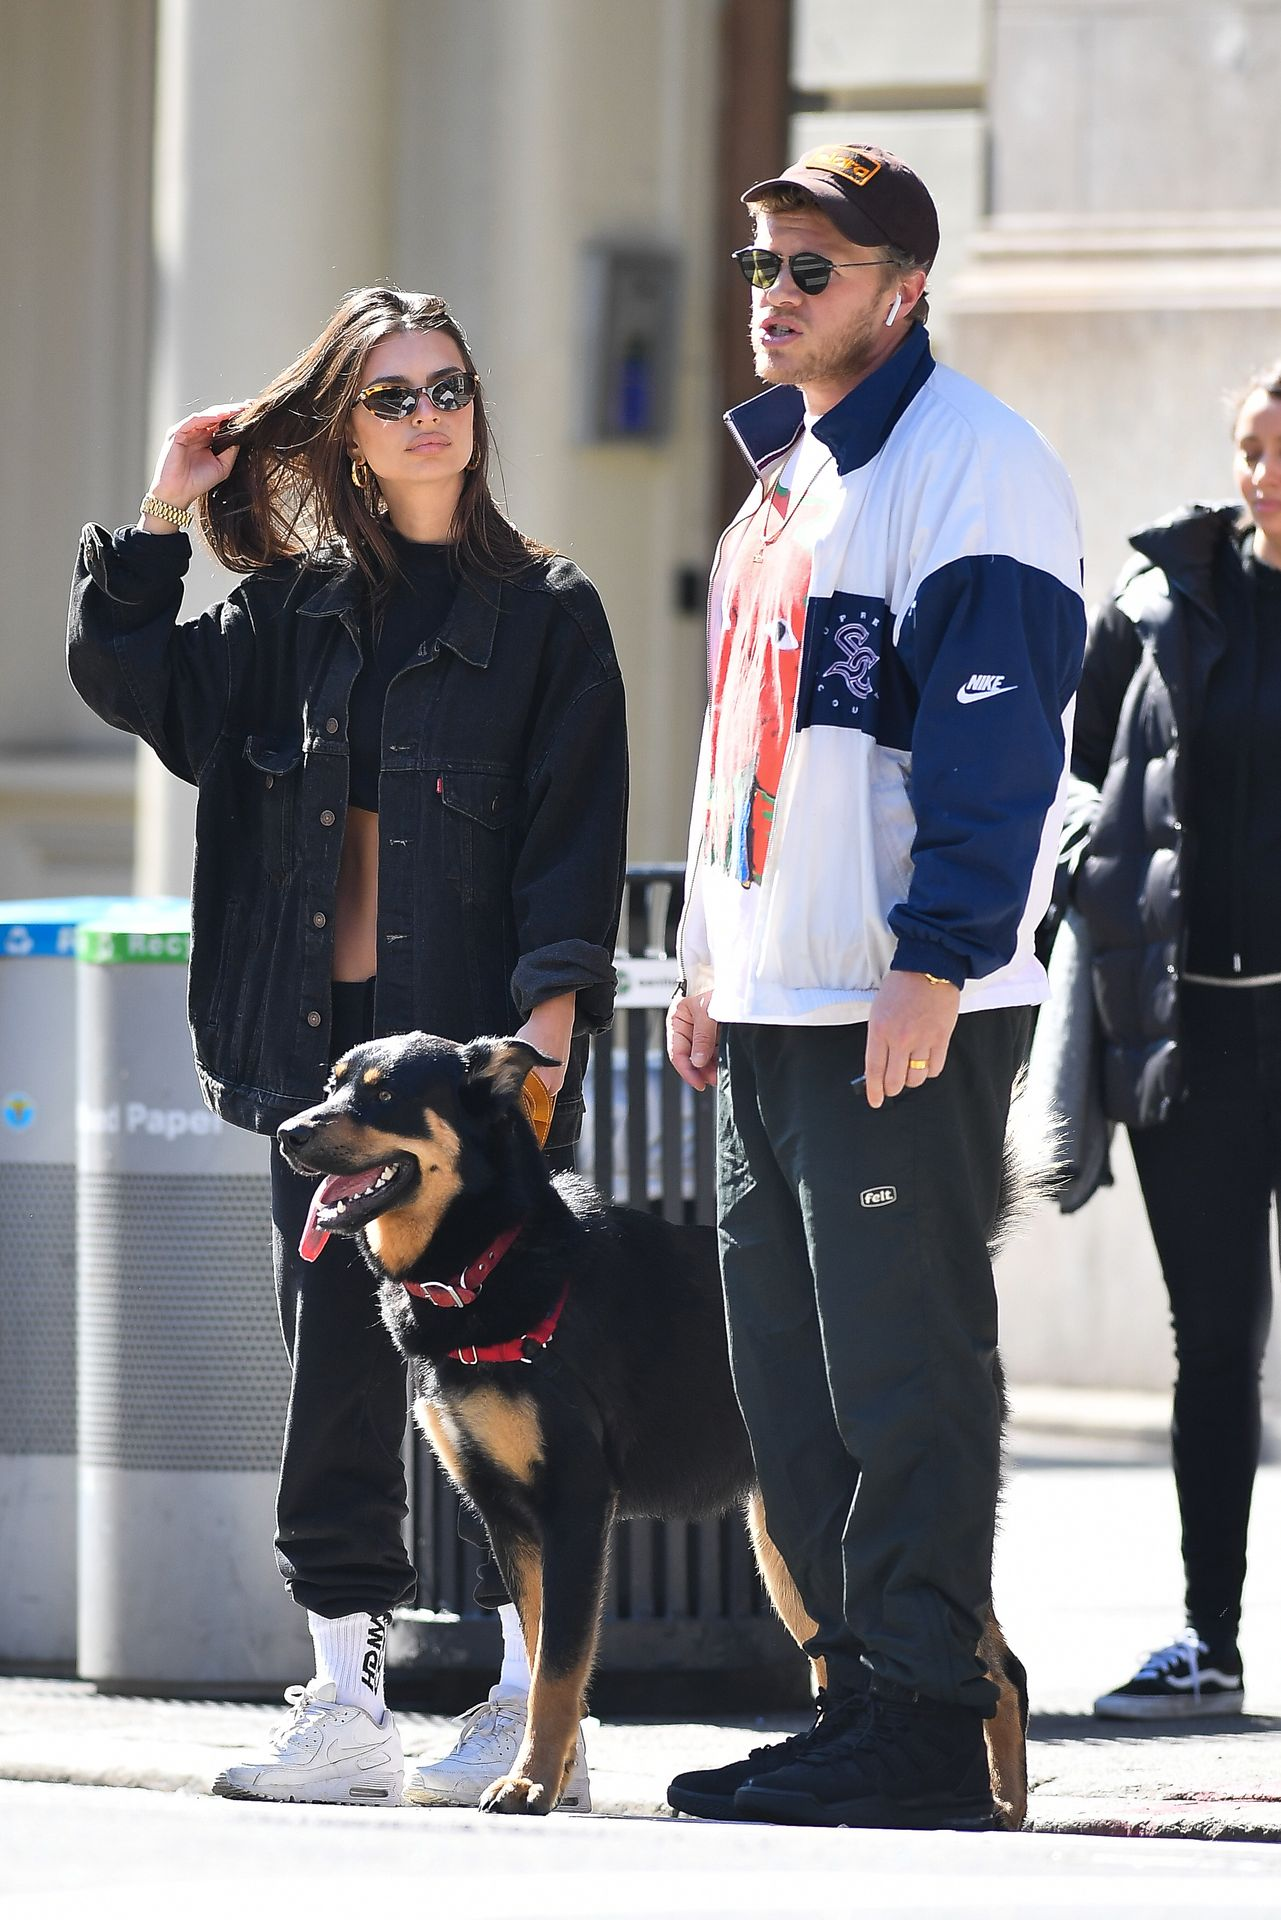 Emily Ratajkowski Walks With Her Dog Colombo In Nyc 0028